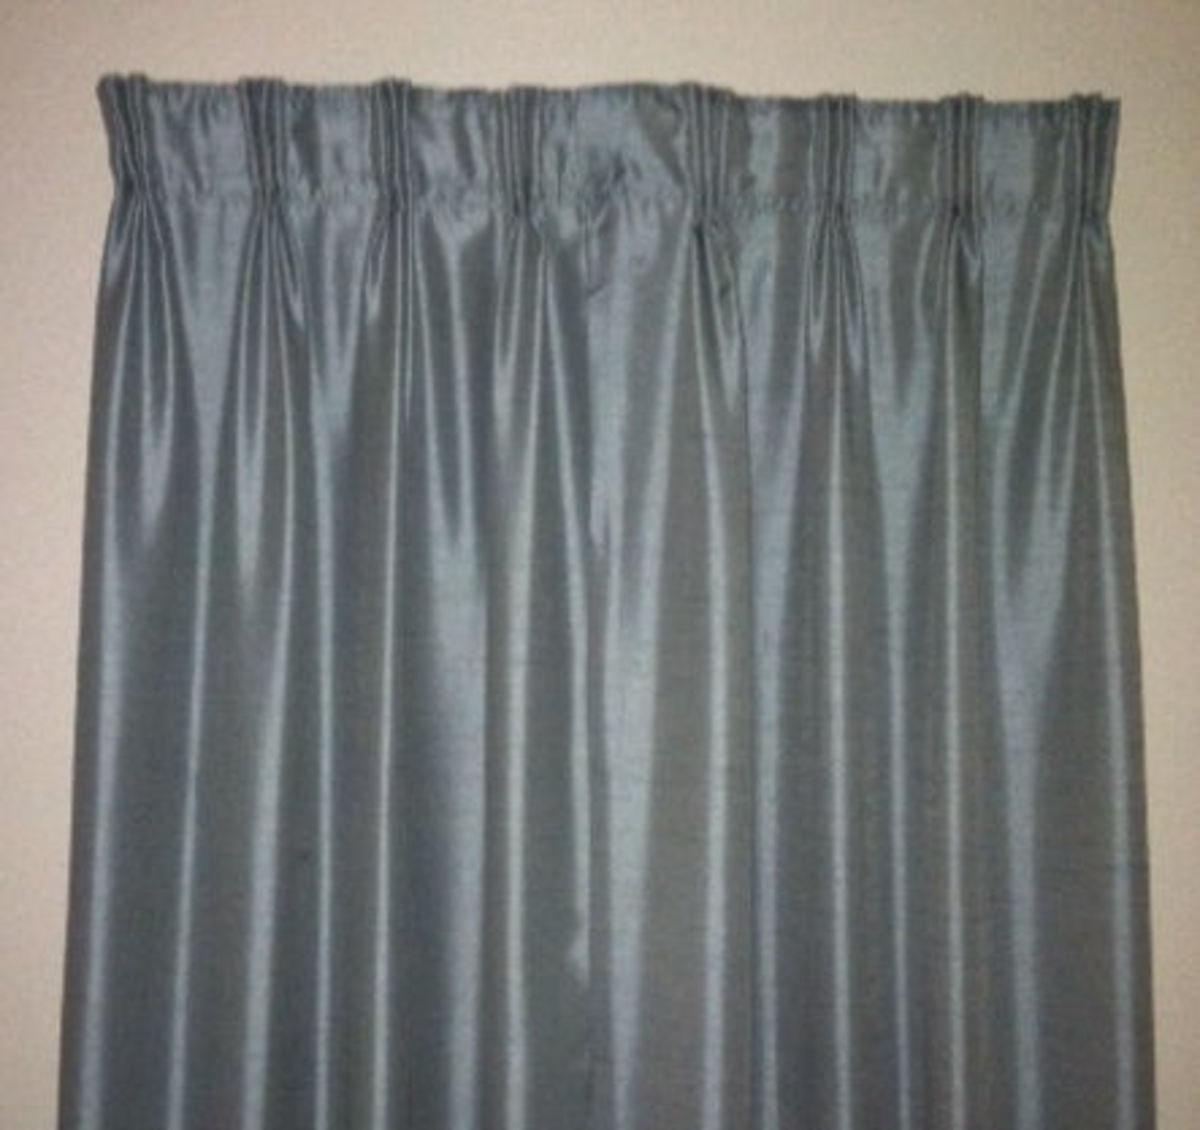 How to Make Pinch-Pleated Drapery From Rod Pocket Curtains